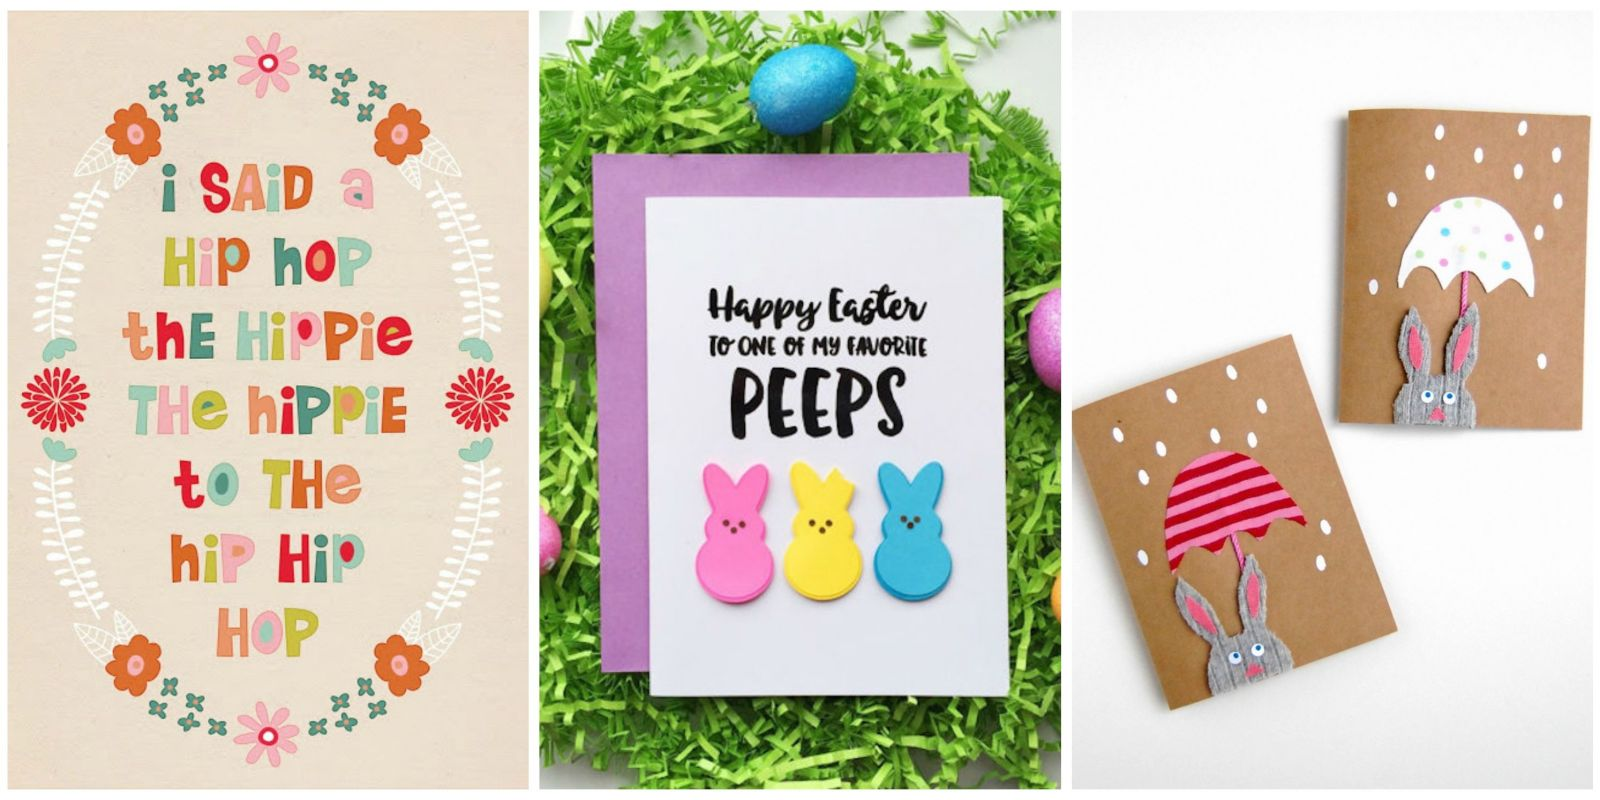 family restaurants for valentine's day - 10 Cute Easter Greeting Cards Ideas for Happy Easter Cards